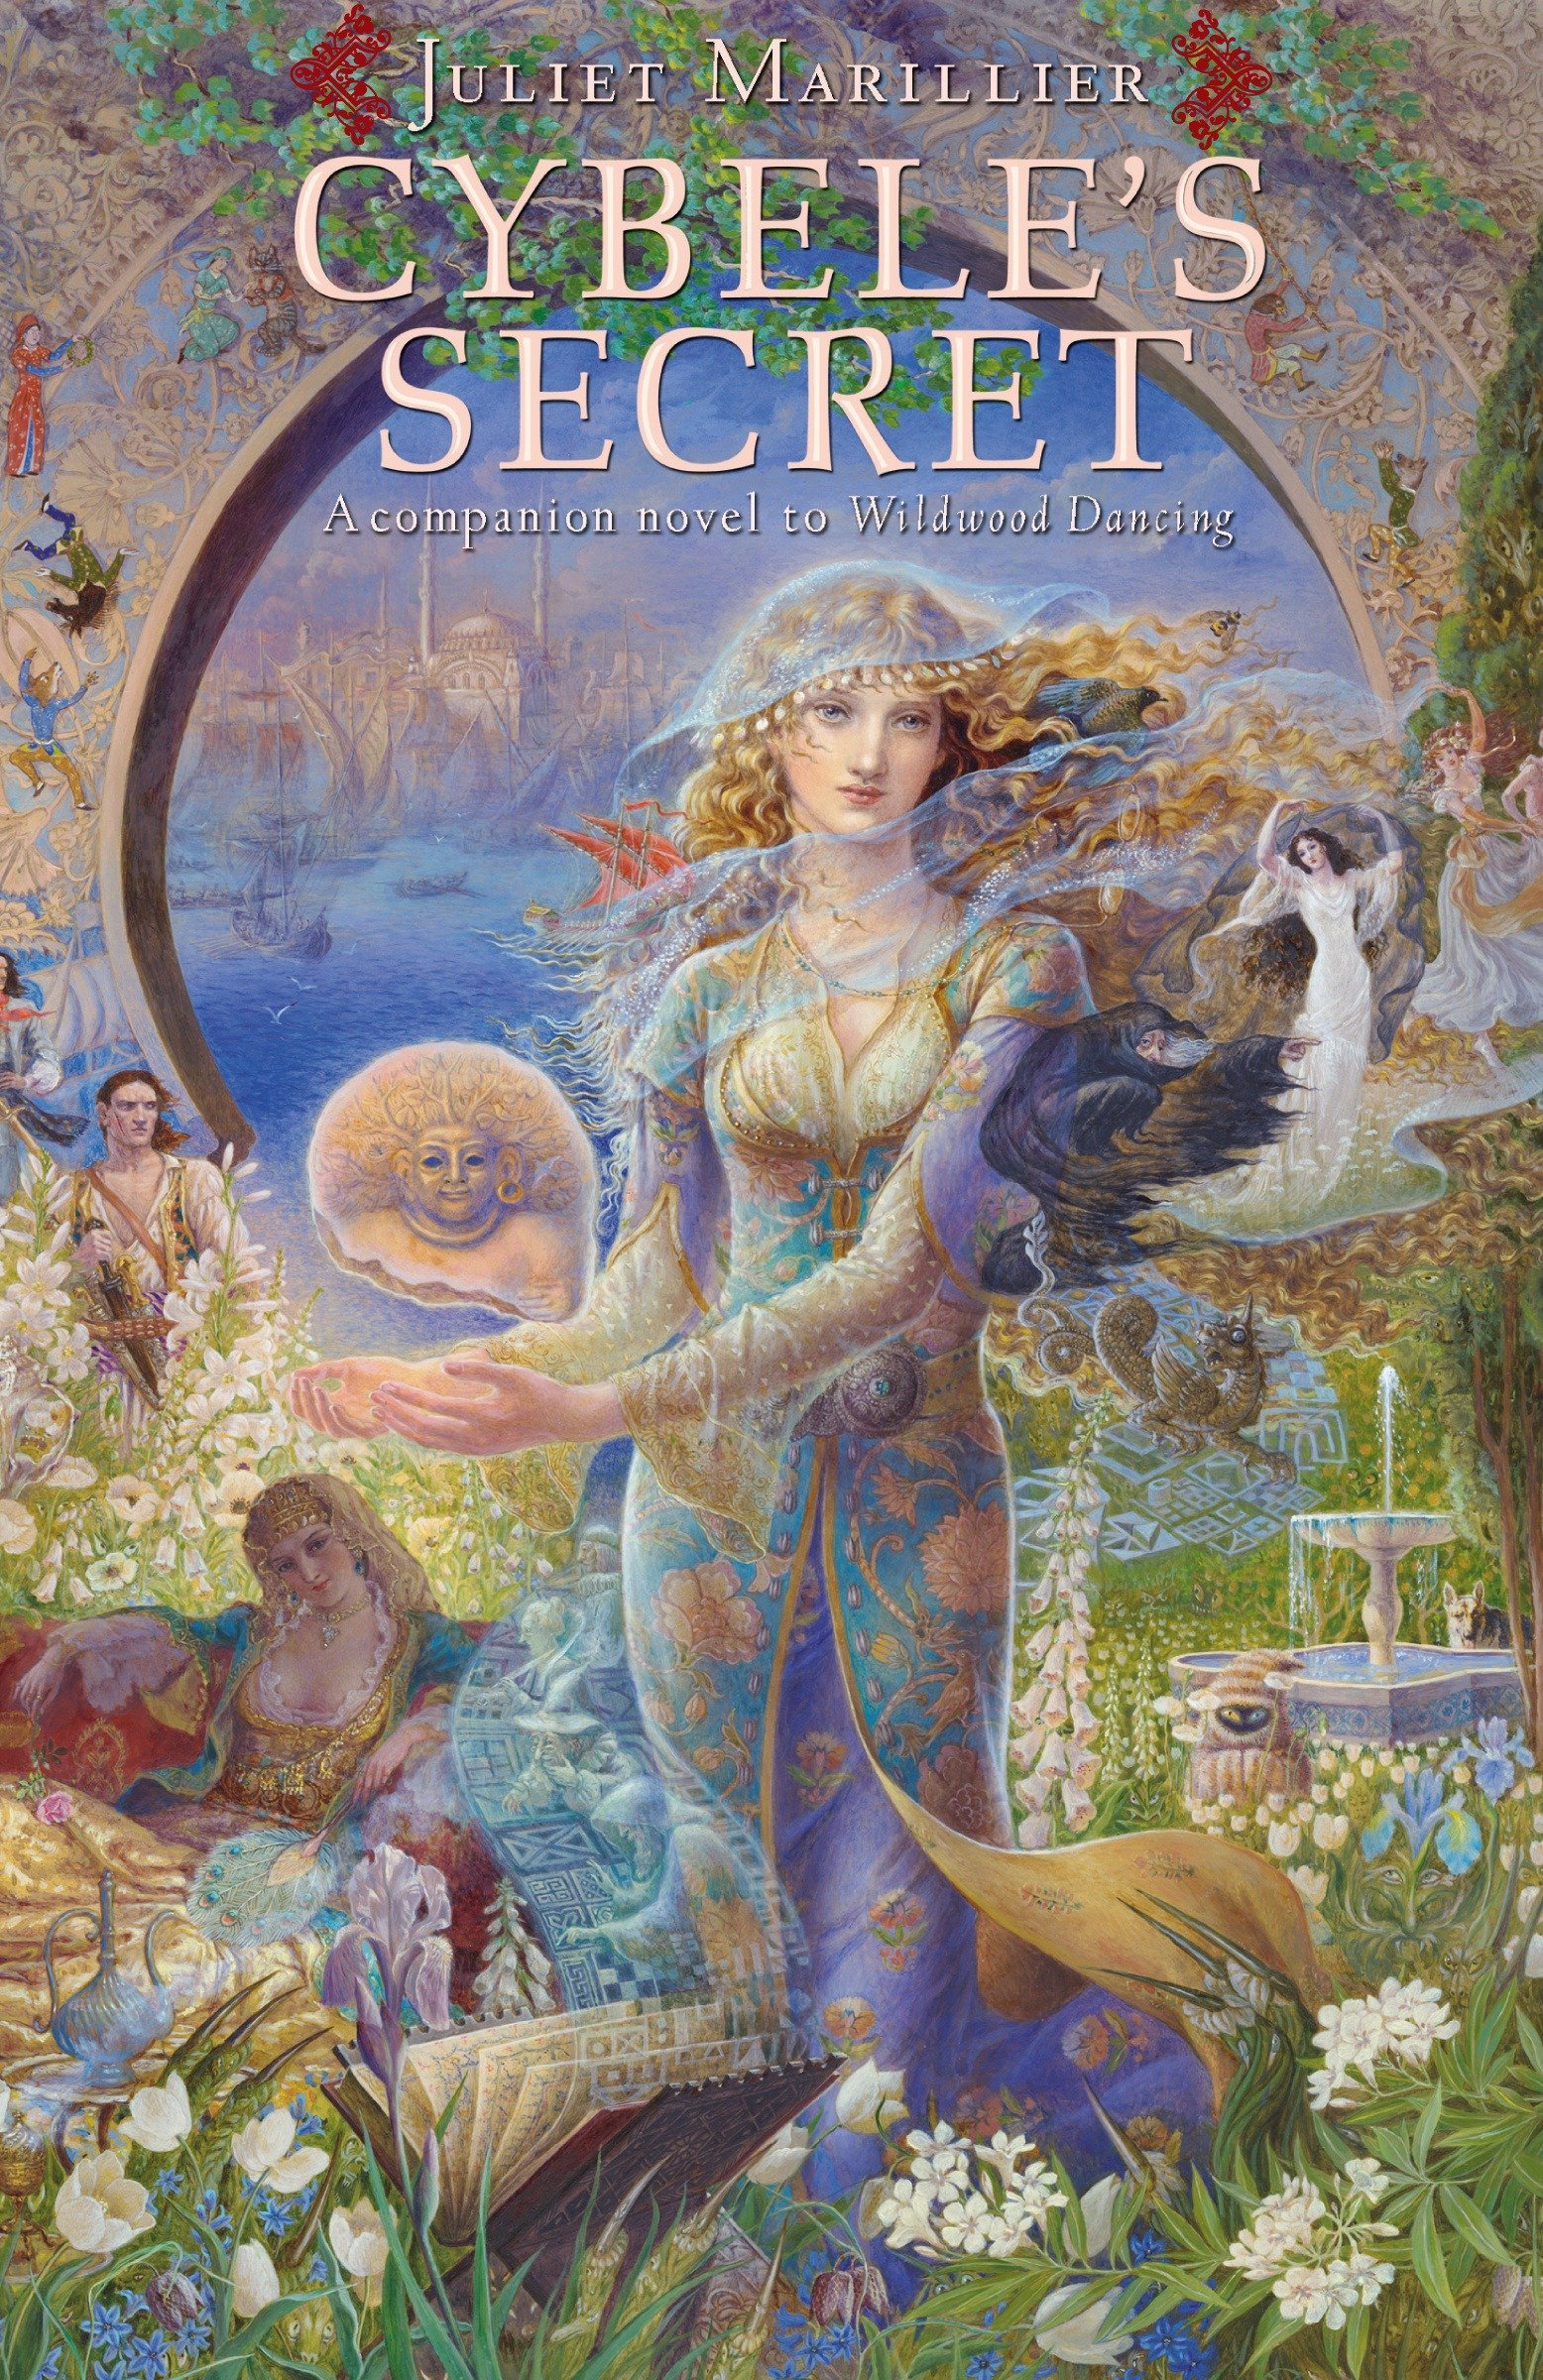 Image result for Cybele's Secret by Juliet Marillier